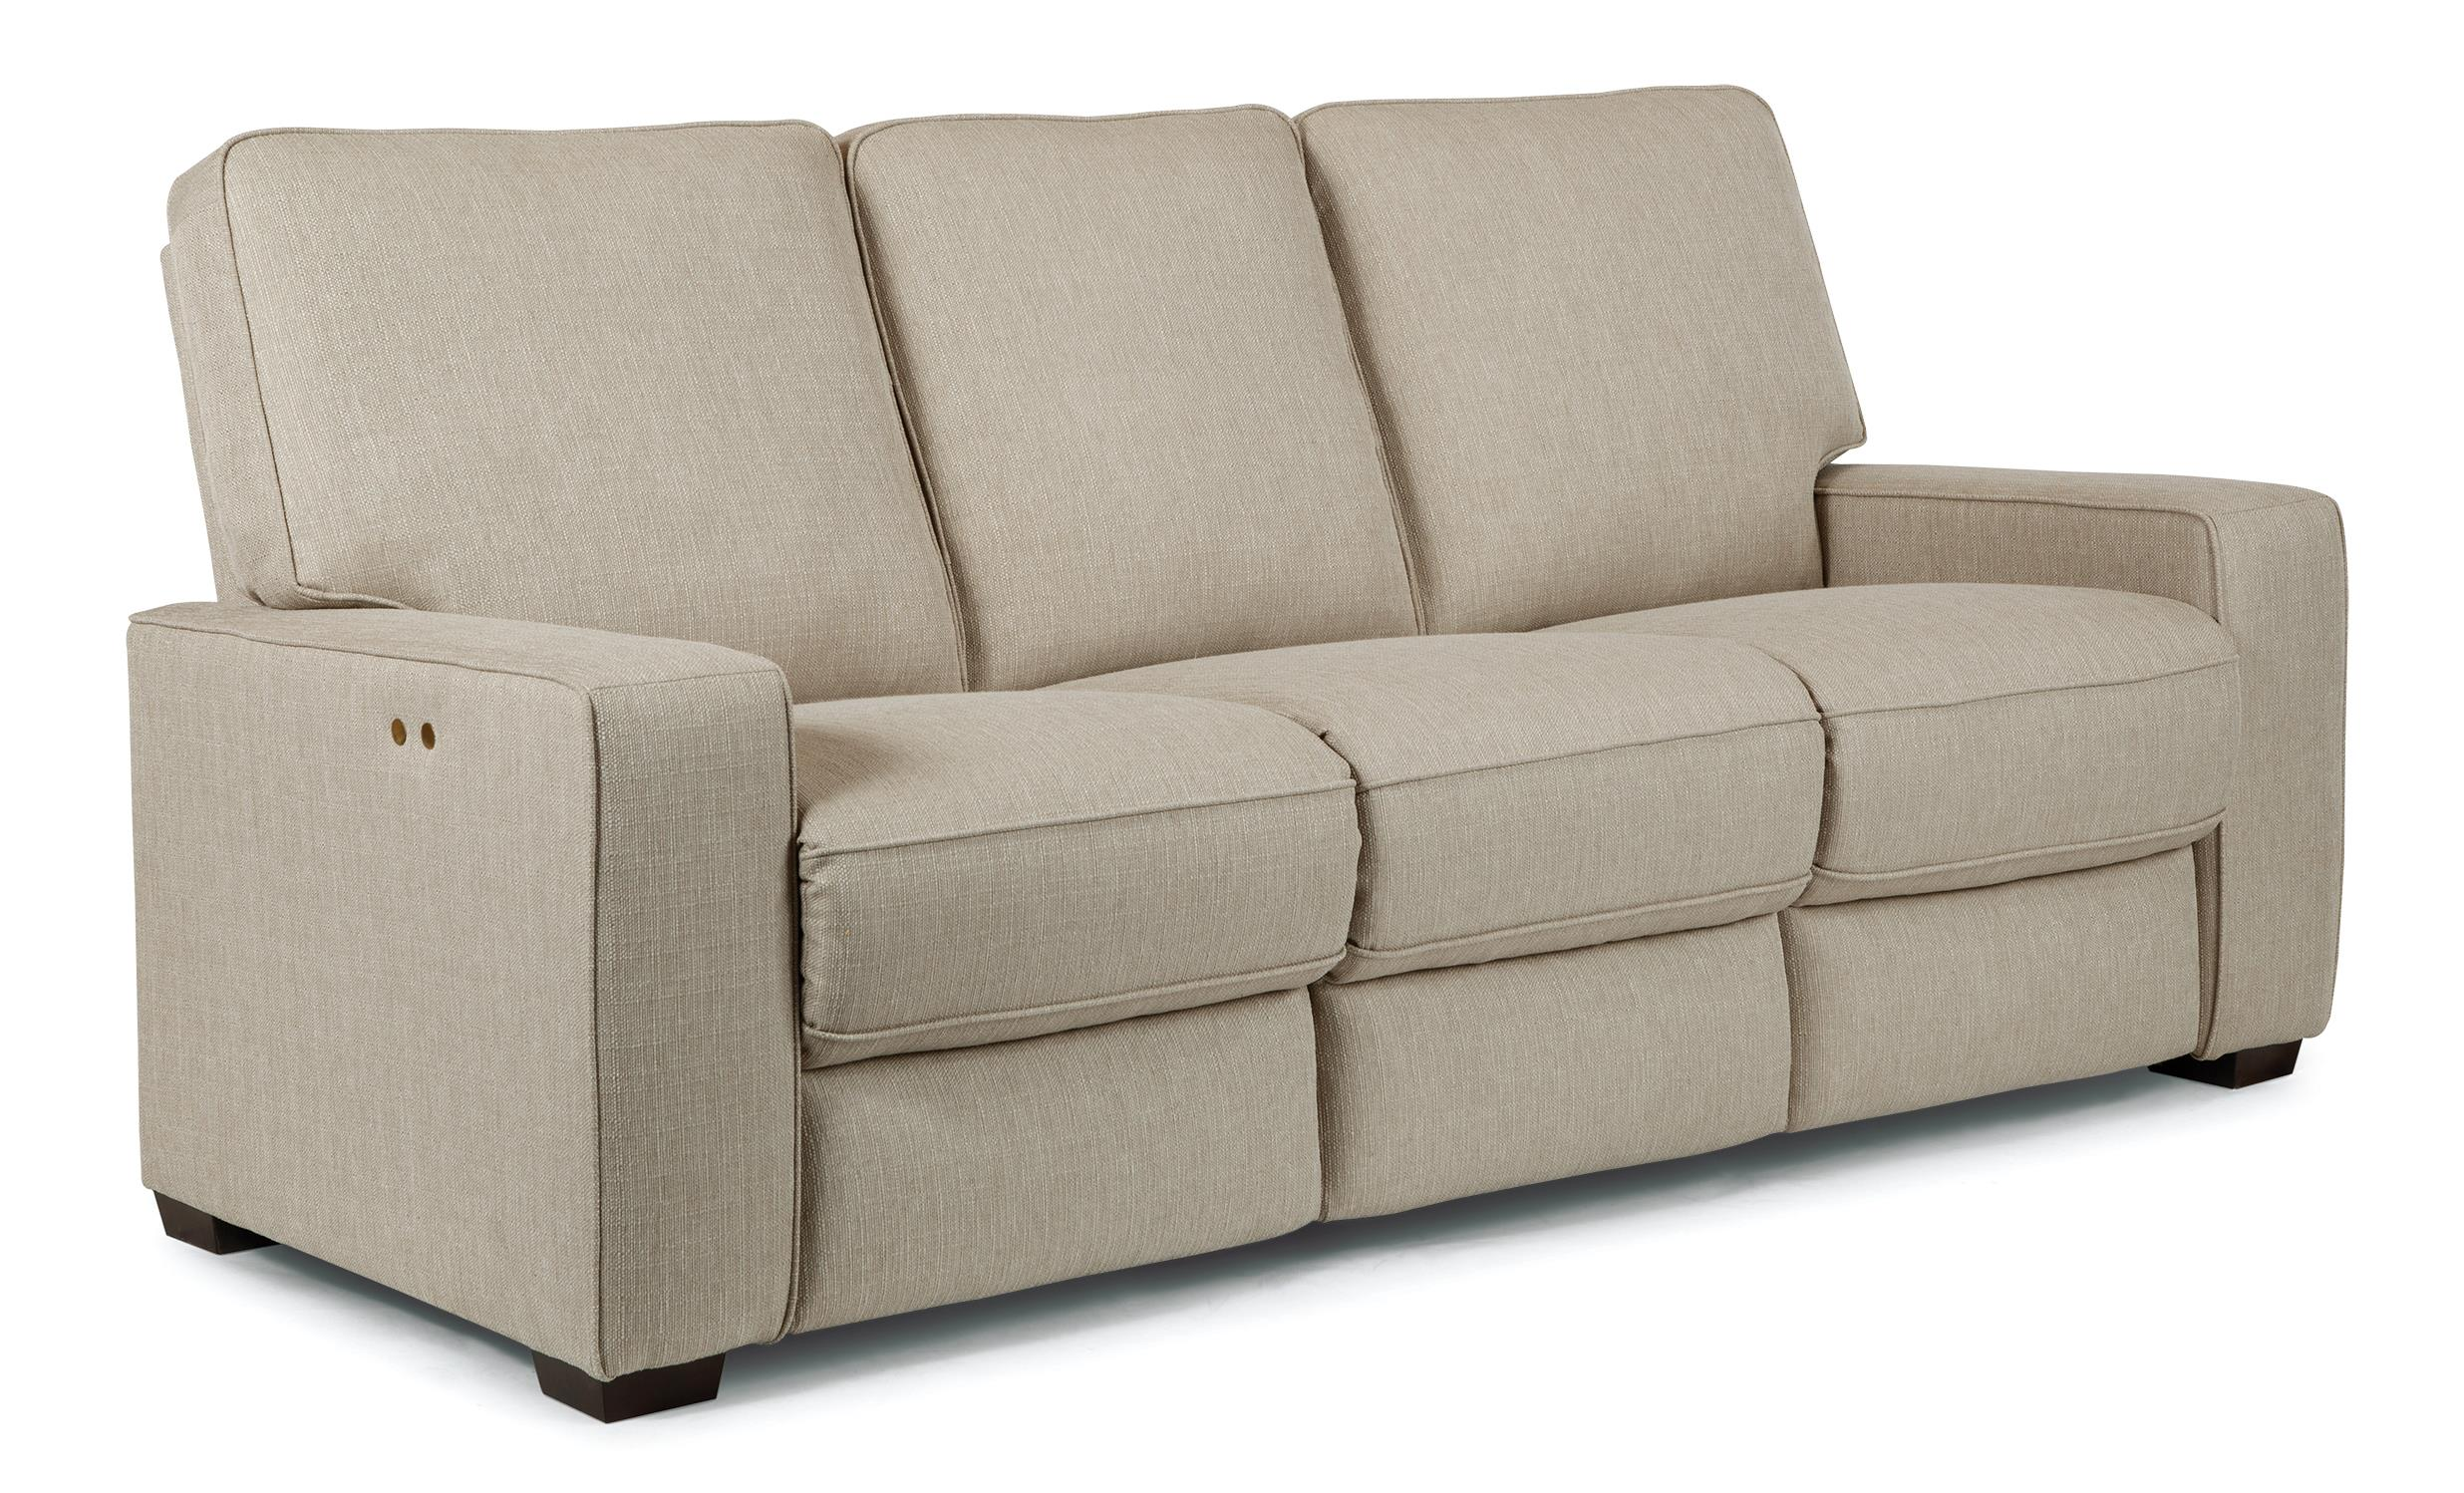 Best Home Furnishings Celena Contemporary Power Reclining Sofa